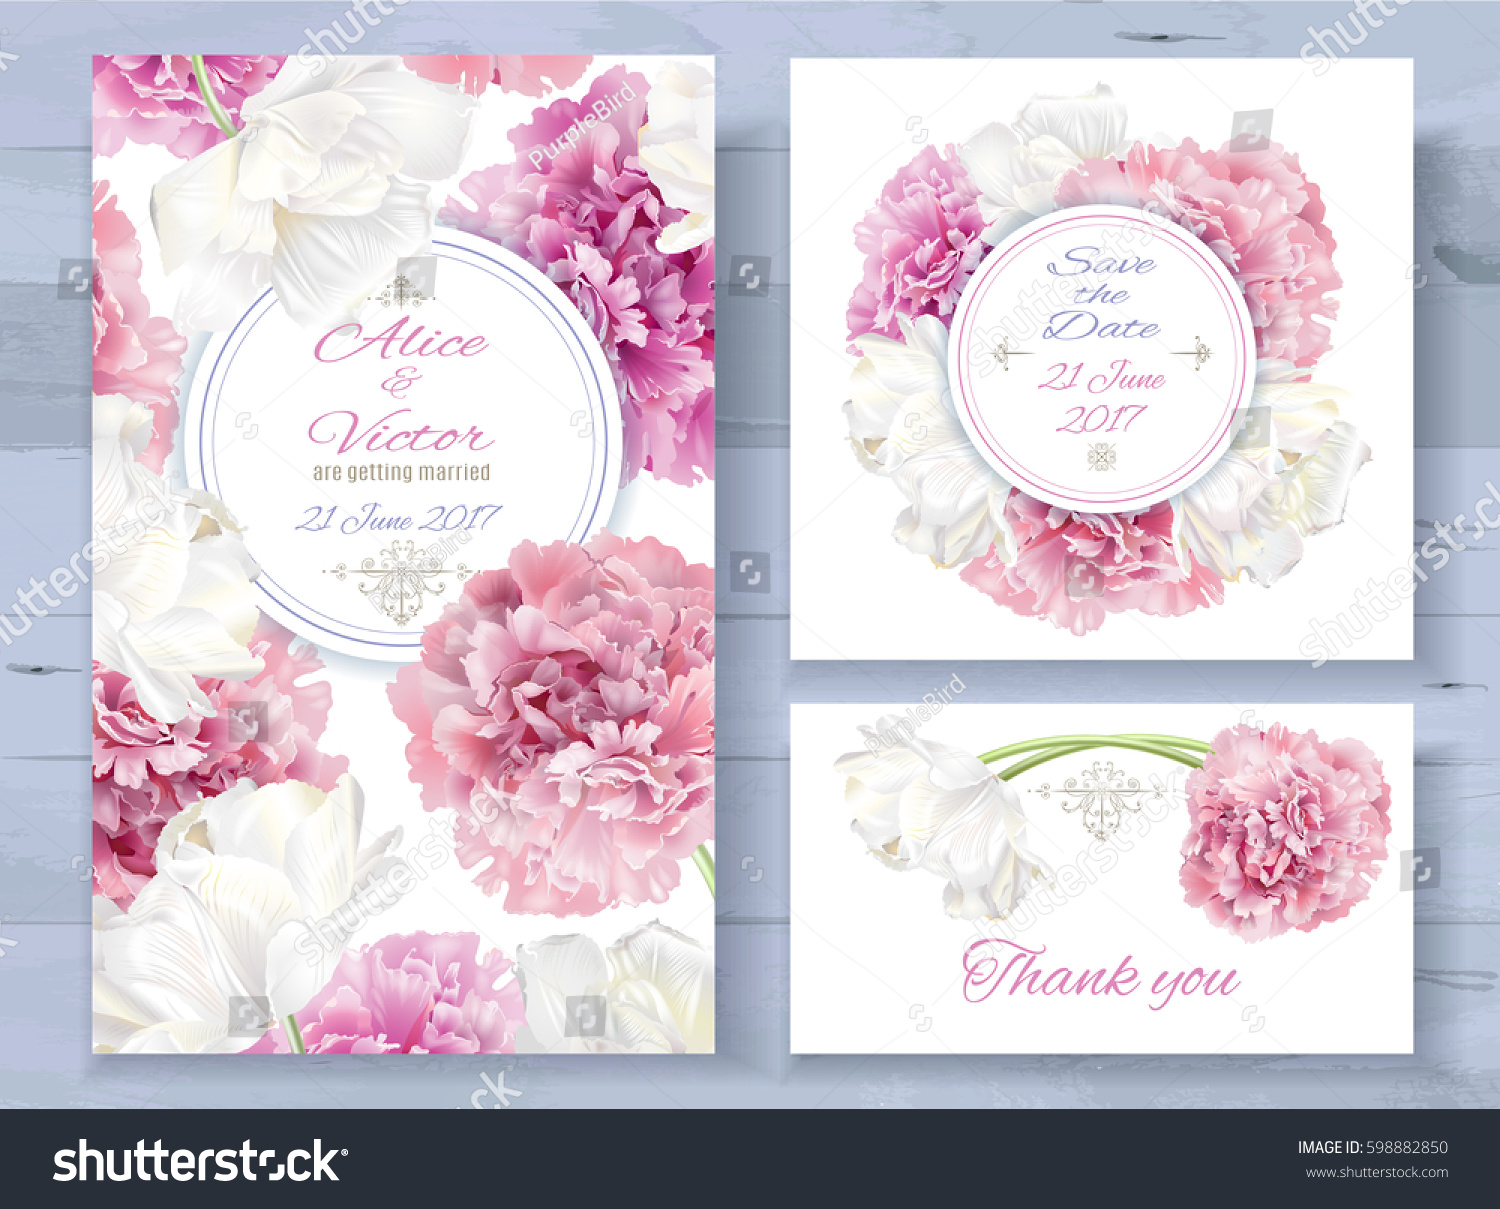 Vector wedding invitations set with pink peony and white tulip flowers on white background. Romantic tender floral design for wedding invitation, save the date and thank you cards. With place for text #598882850